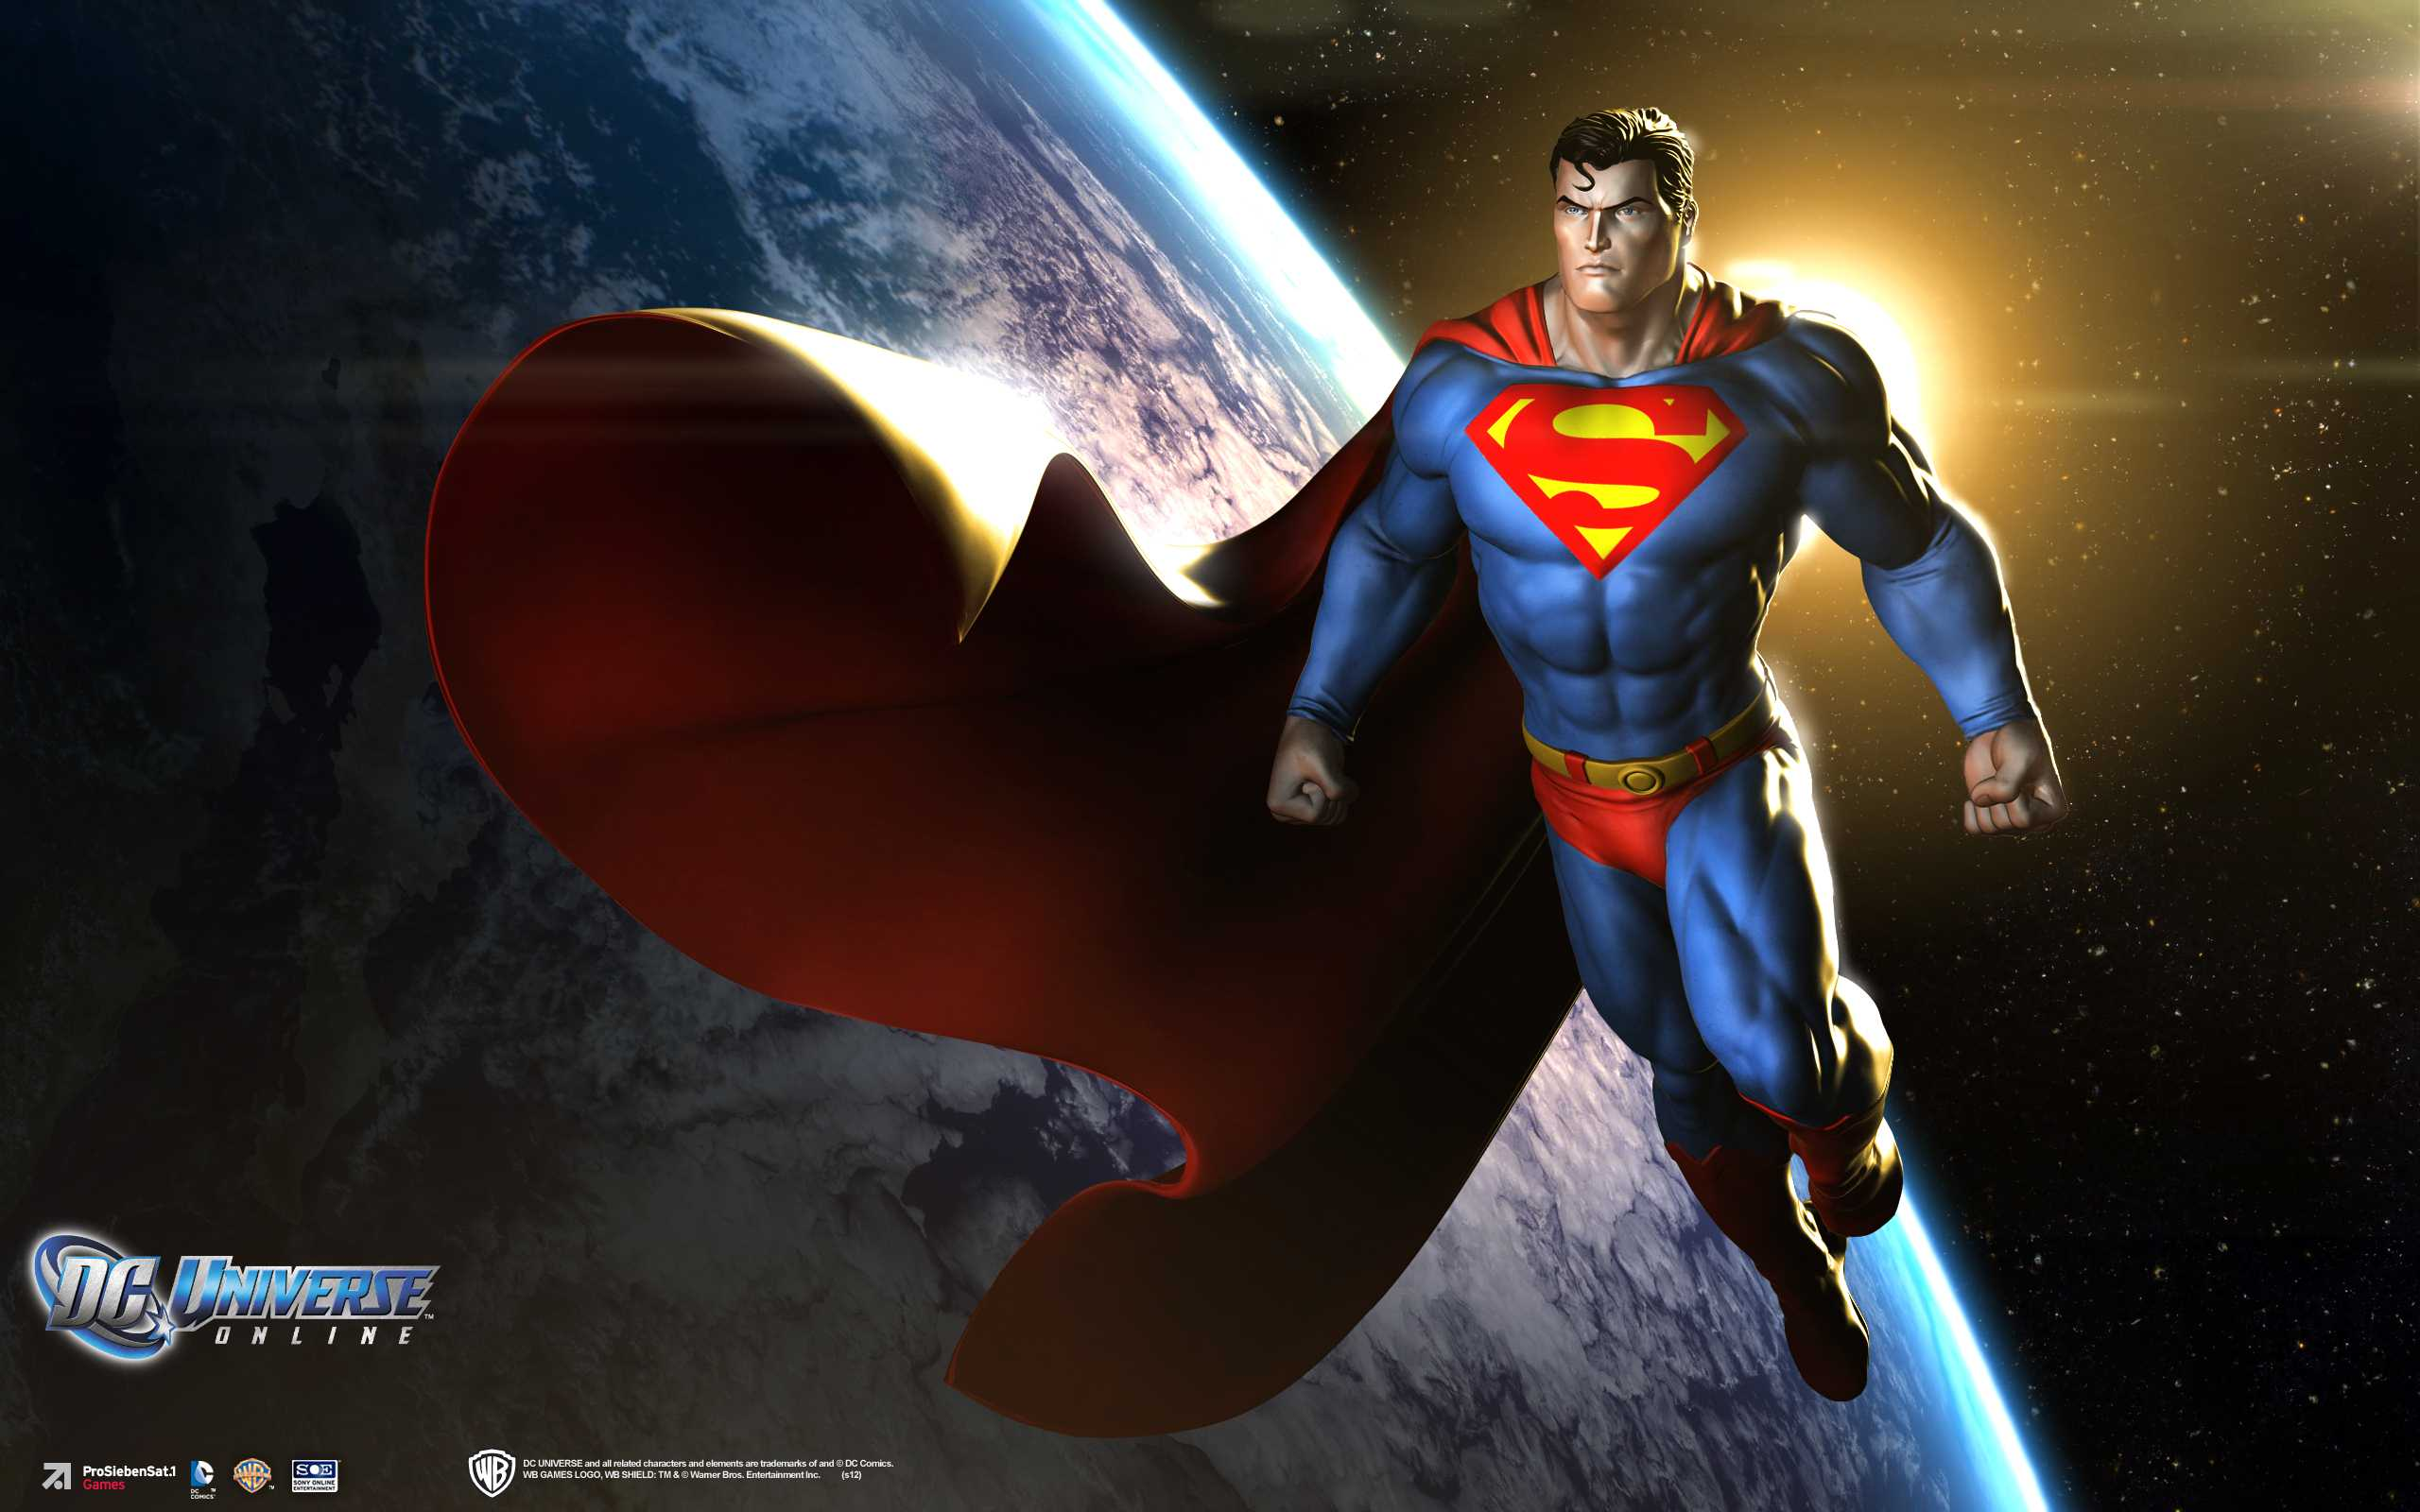 Superman Wallpaper HD Best Collection For Desktop Mobile 2560x1600